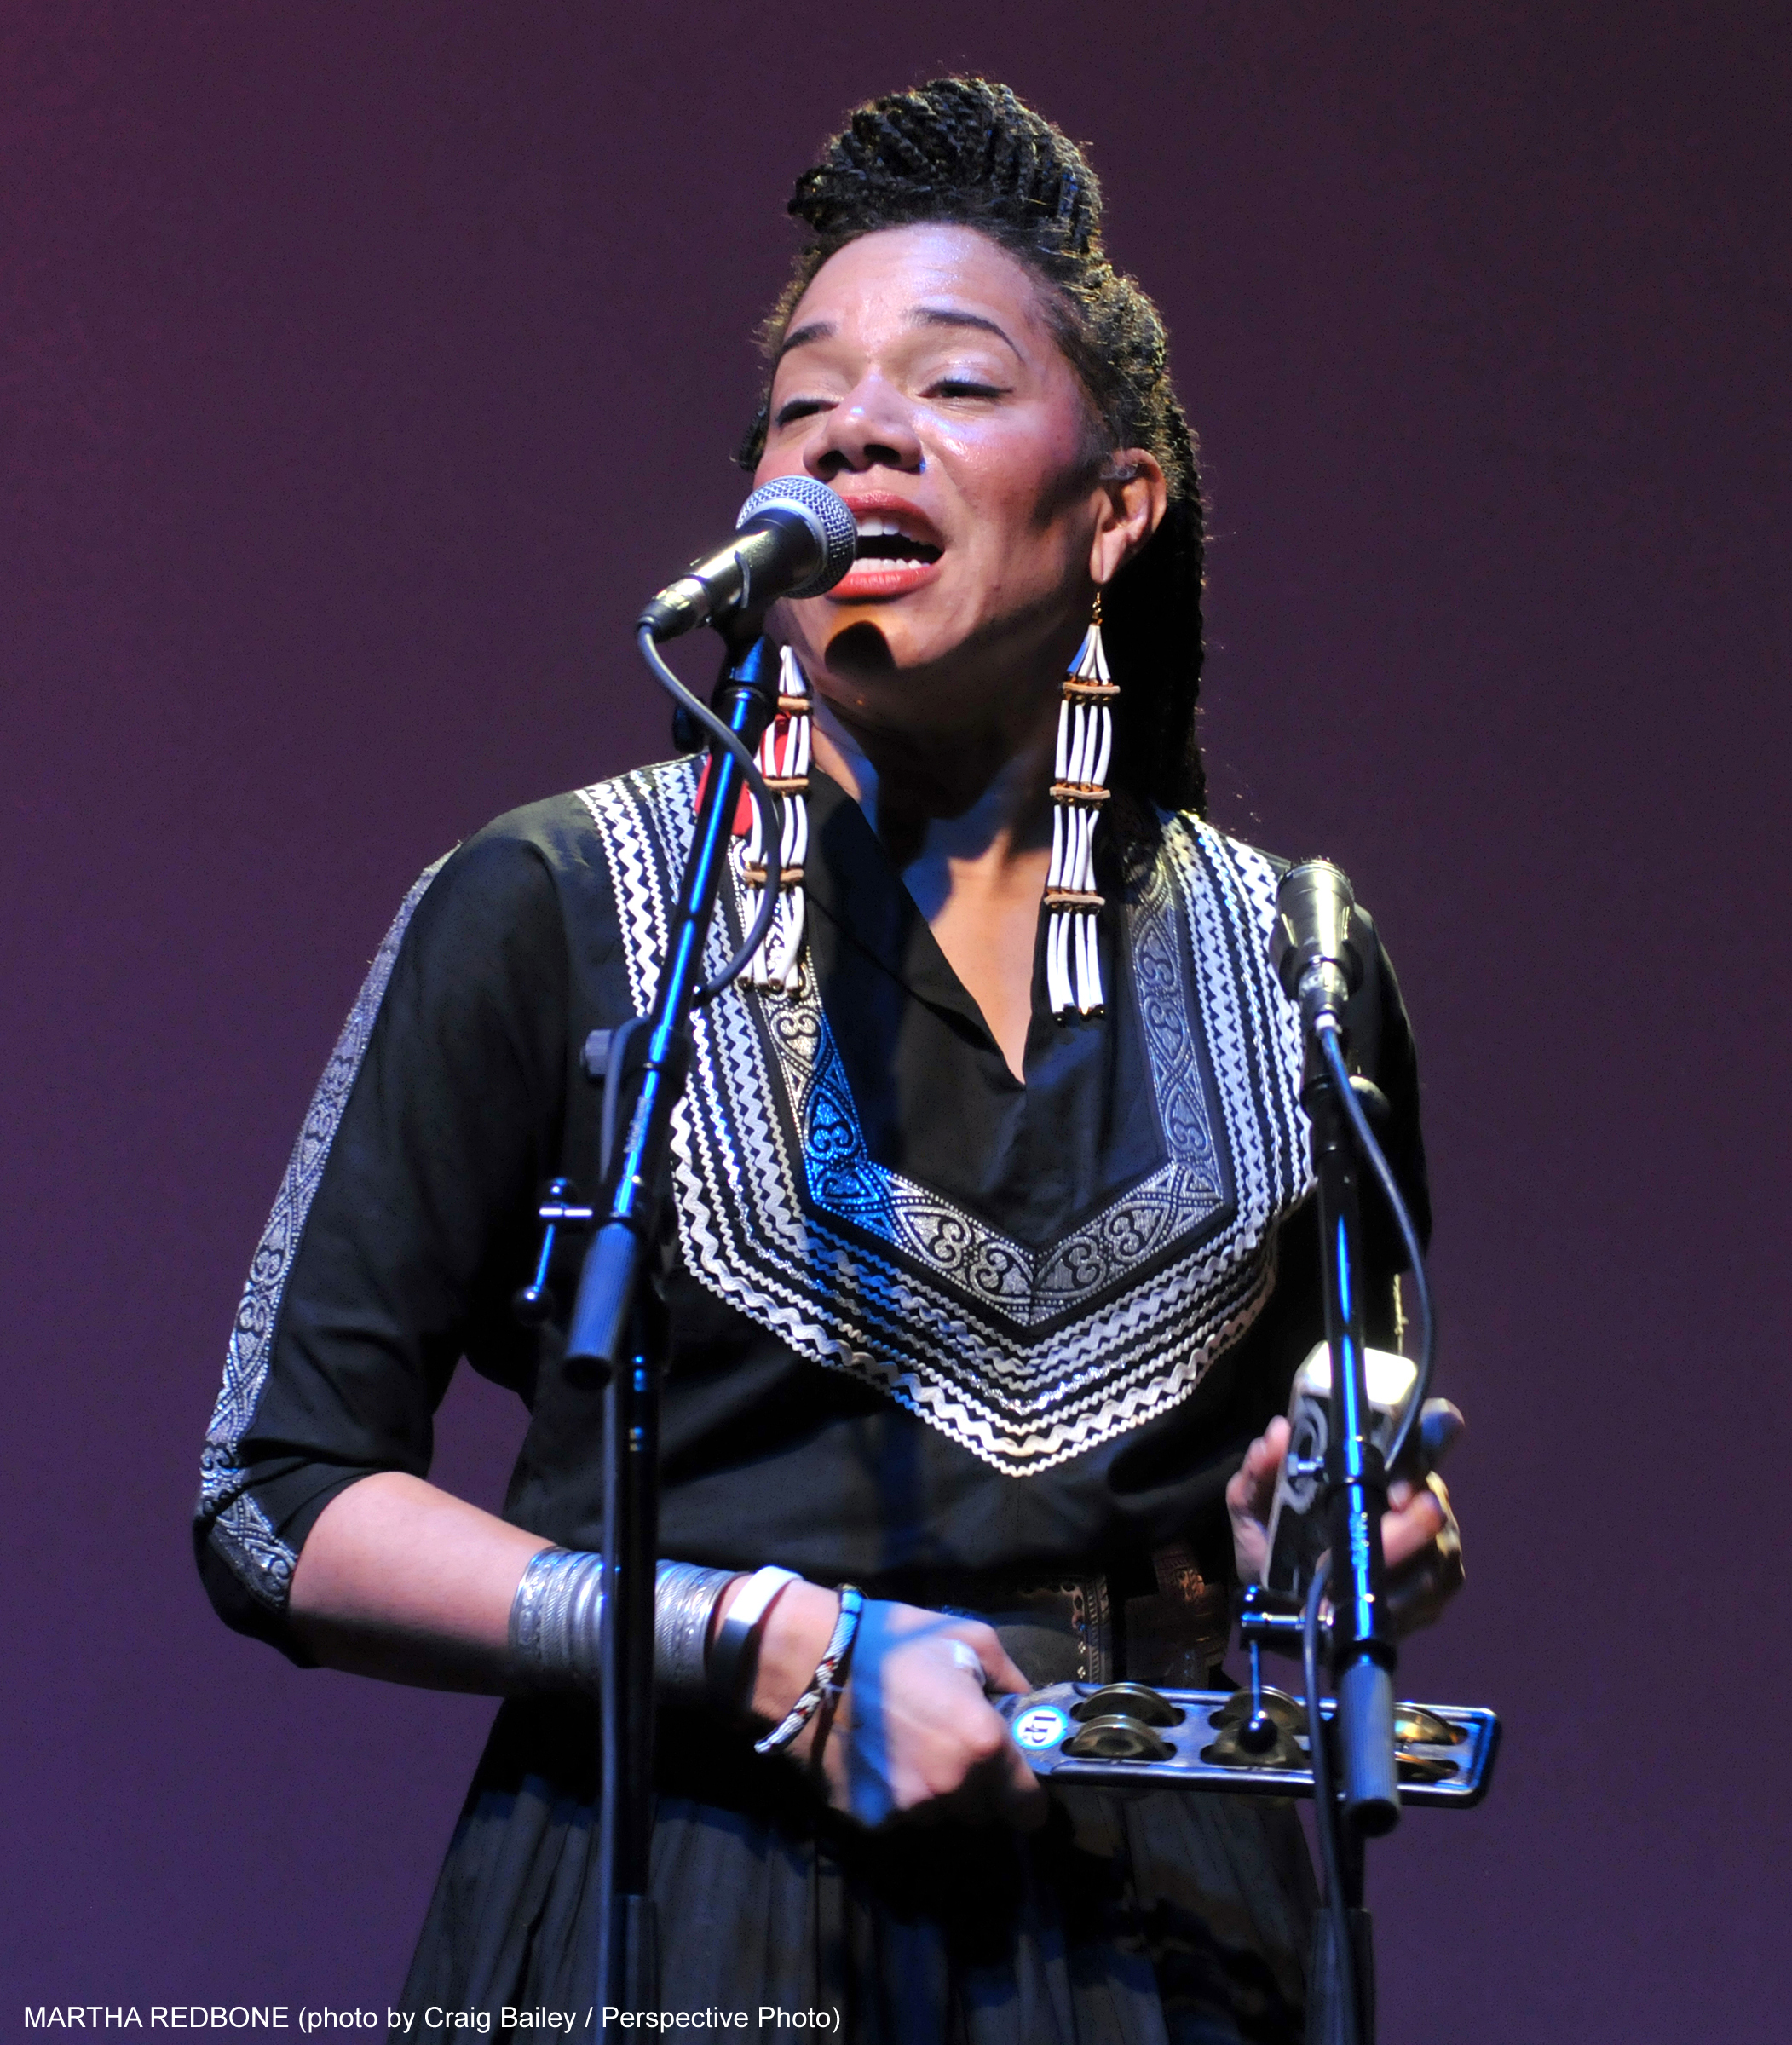 Martha Redbone Roots Project - Publicity Images - 2014